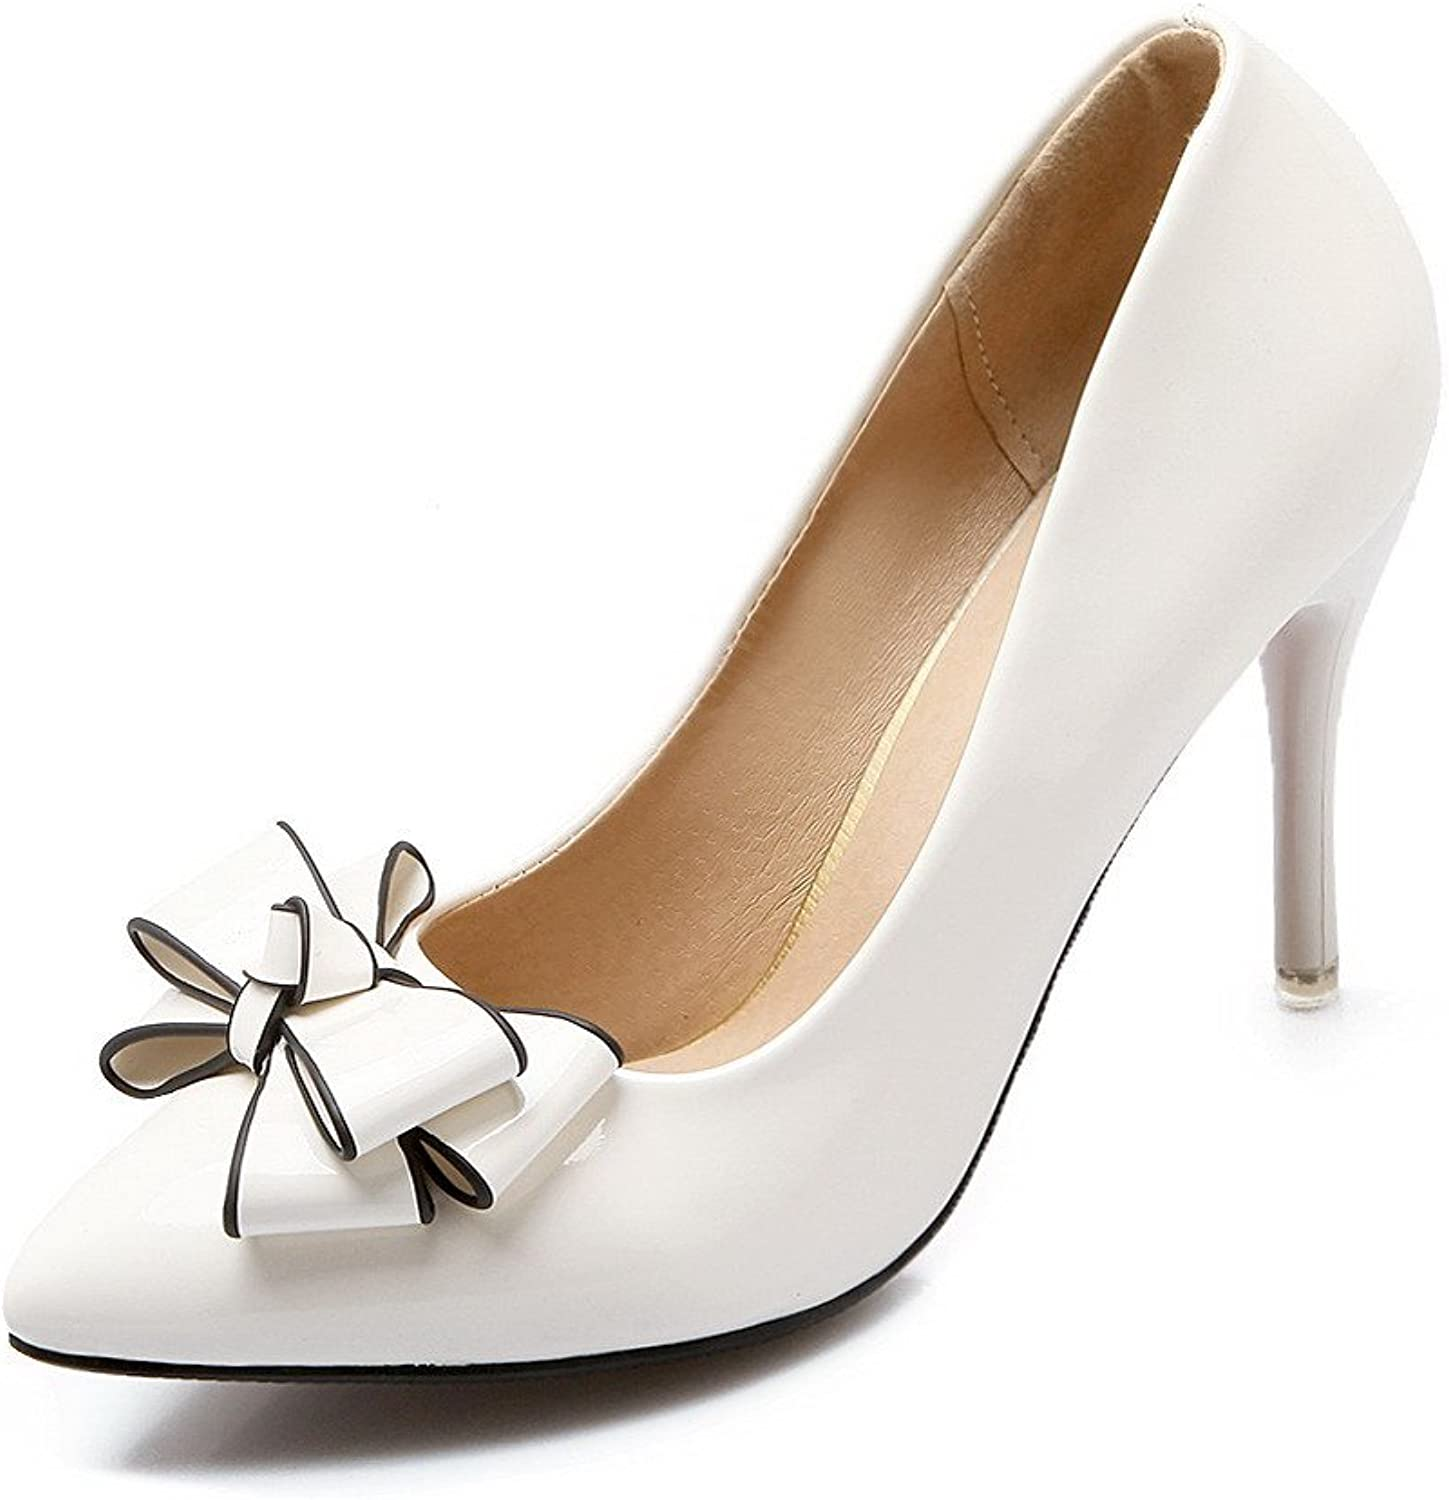 AllhqFashion Women's Patent Leather Pointed Closed Toe High-Heels Pull-on Solid Pumps-shoes